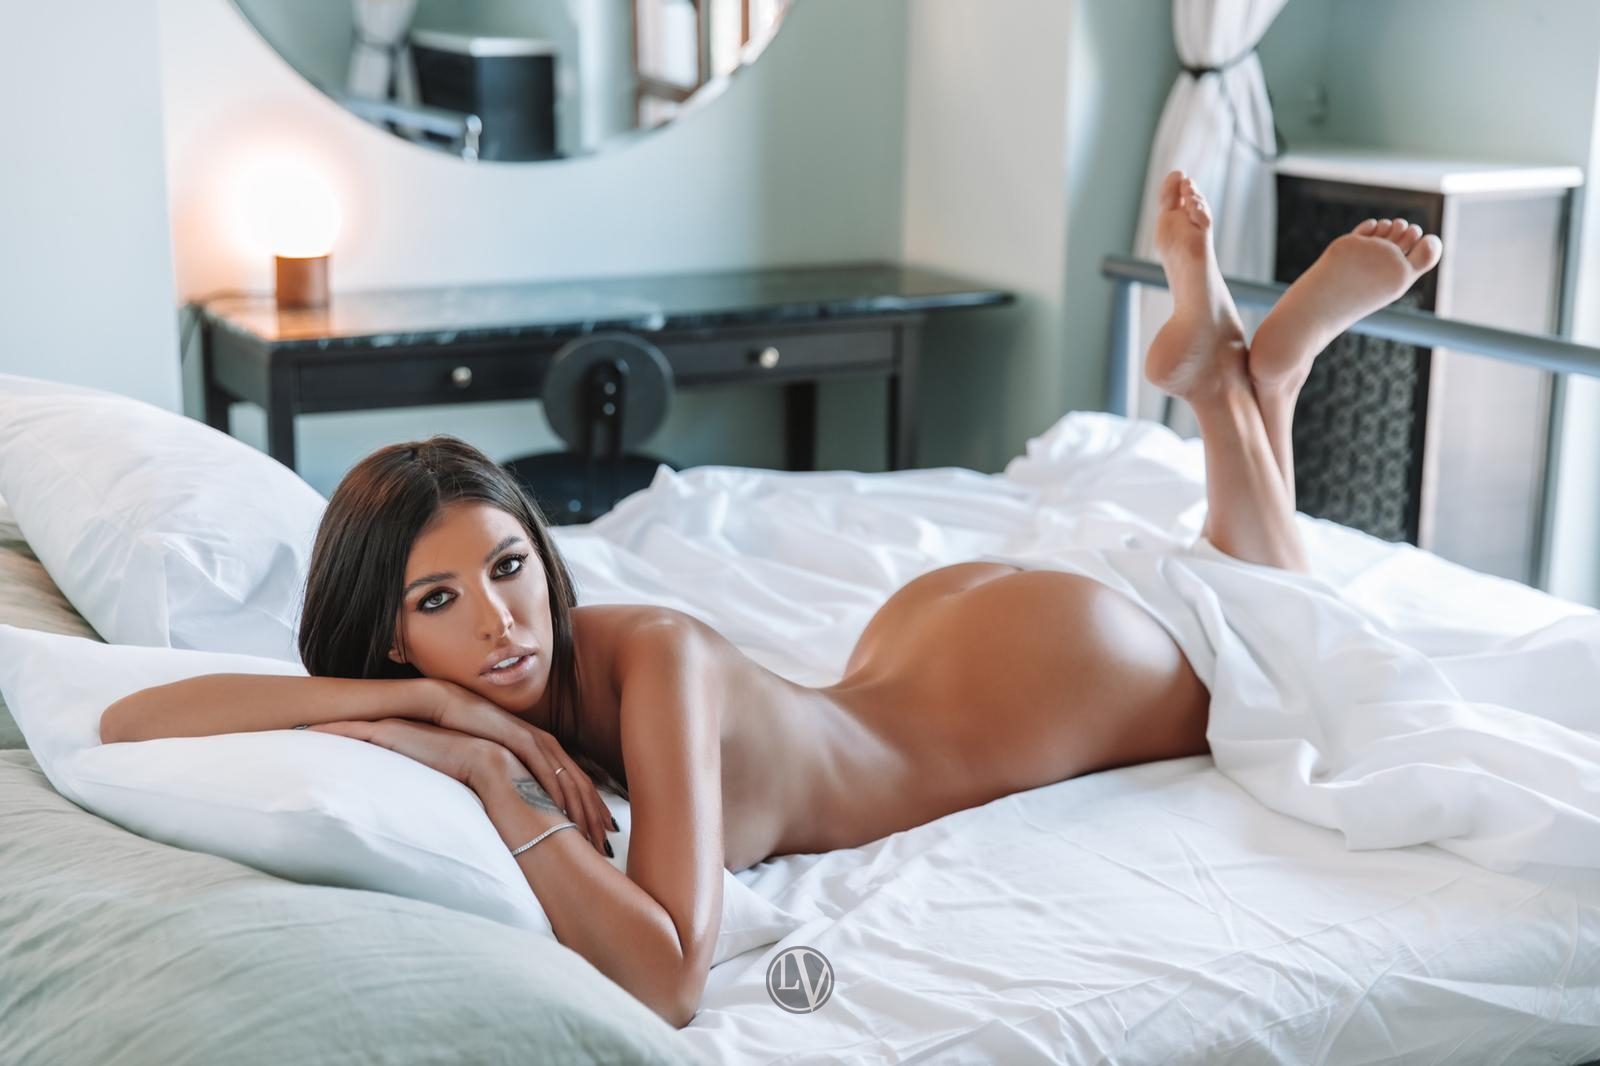 Ivanka lying on the bed with a white sheet over her